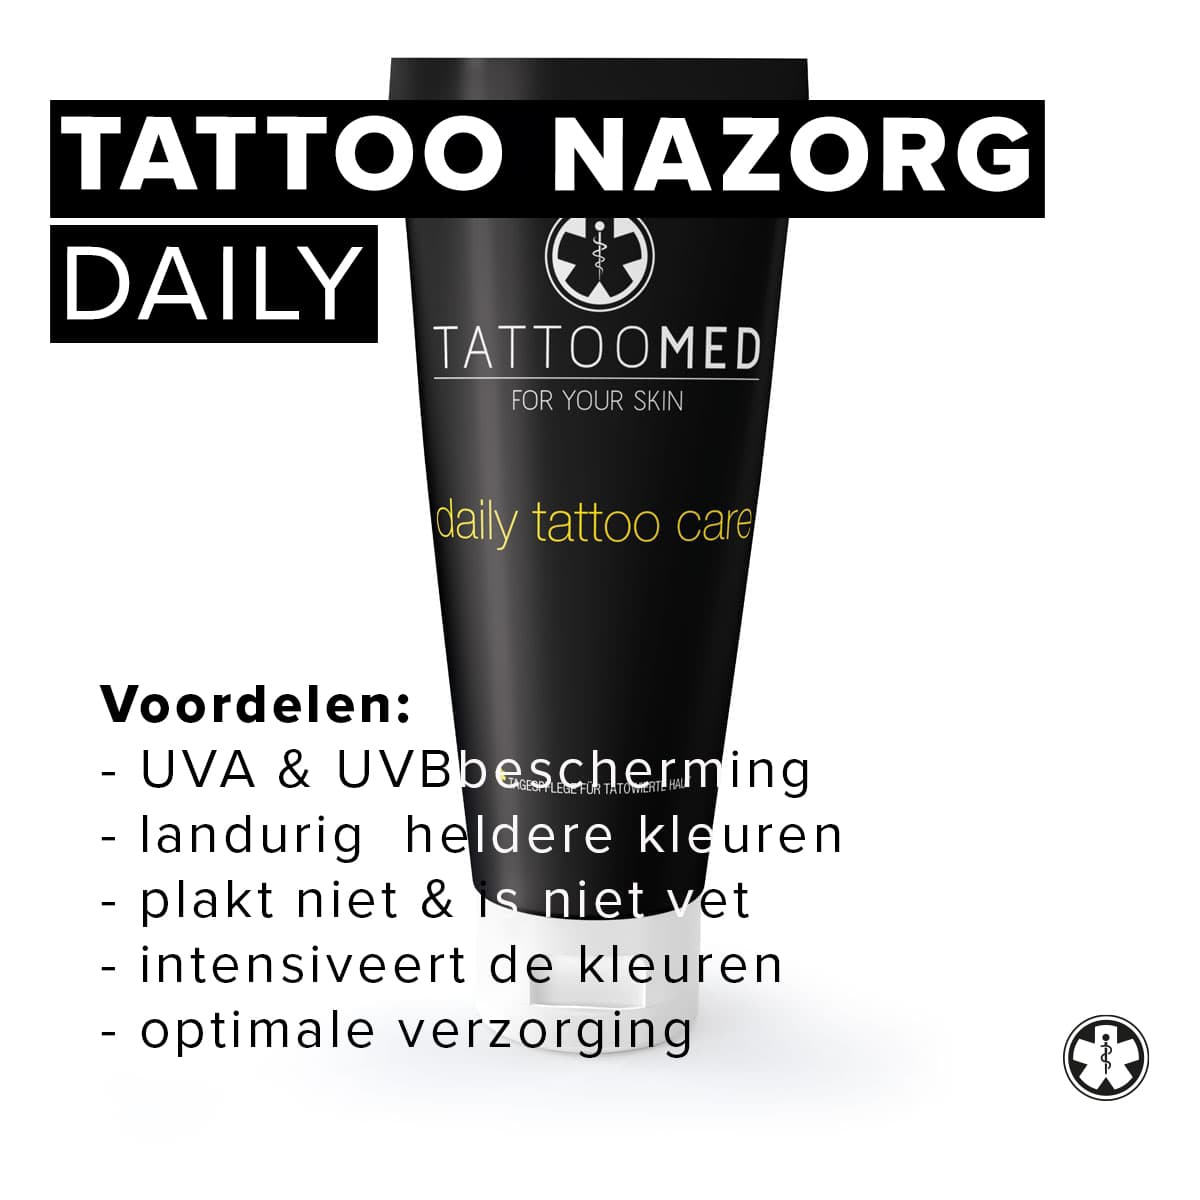 Daily Tattoo Care | Tattoo nazorg